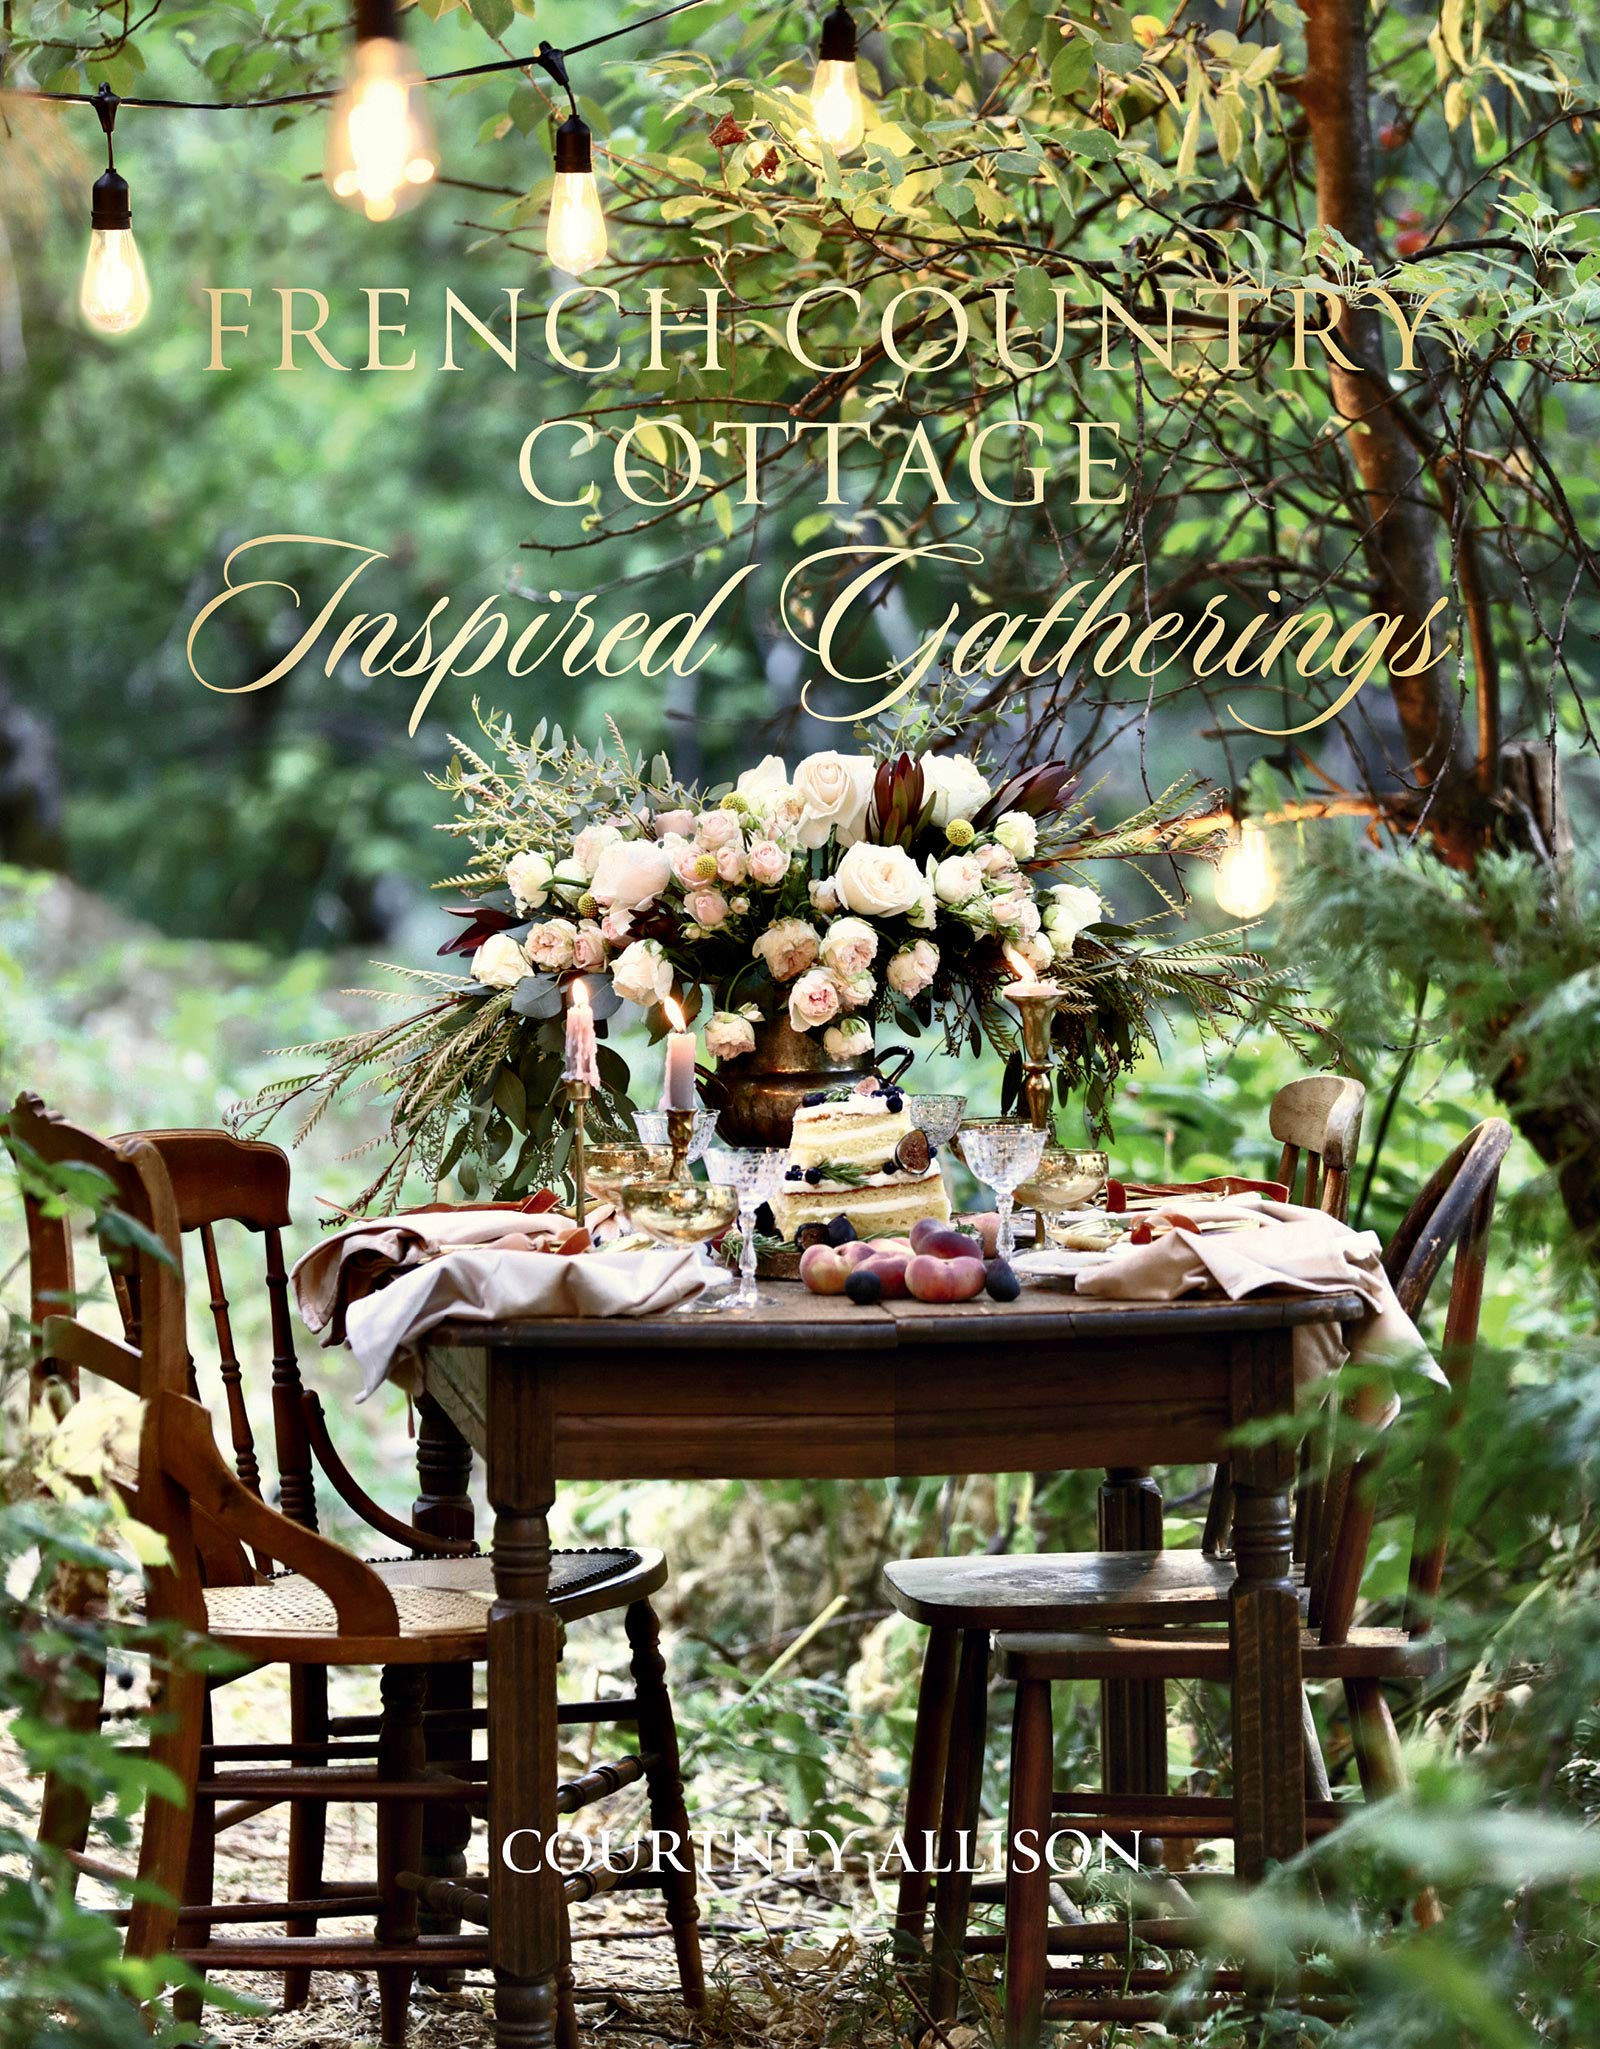 French Country Cottage Inspired Gatherings by Courtney Allison